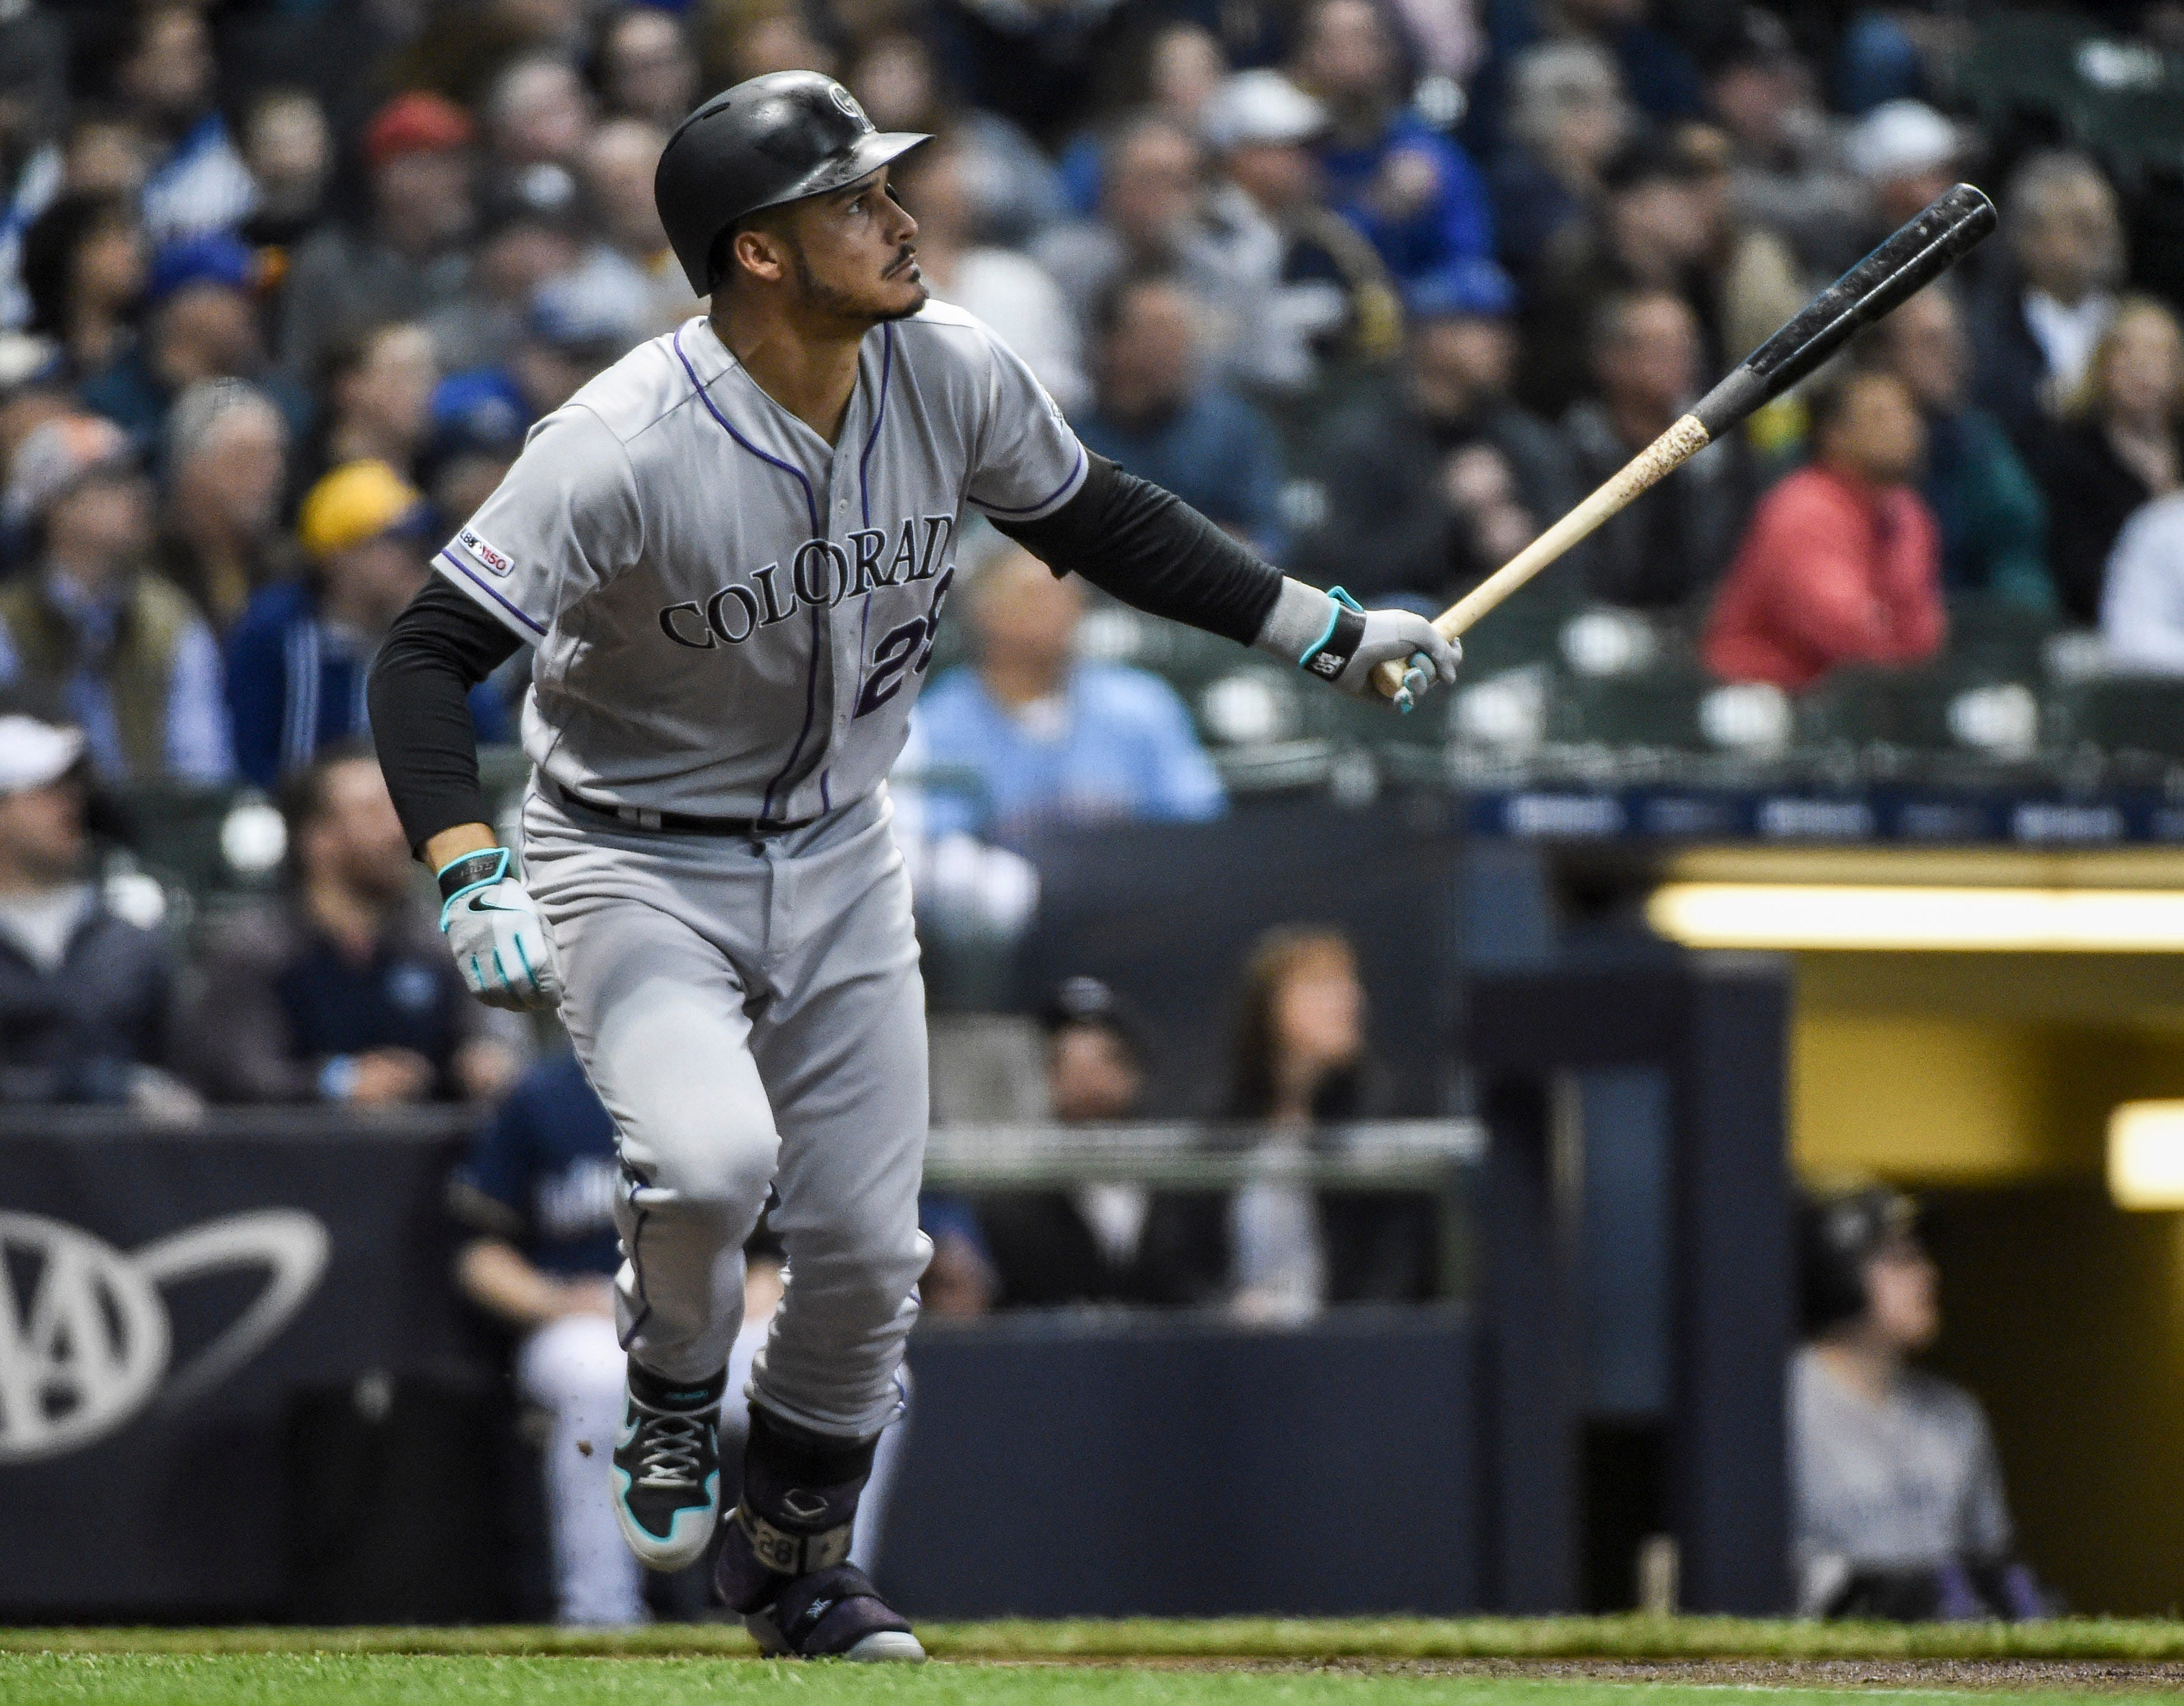 888d45b7a ... Arenado definitely belongs on the list of recent 'Brewers killers;'  here's a bunch more. Including Colorado's Nolan Arenado, take a look at a  list of ...